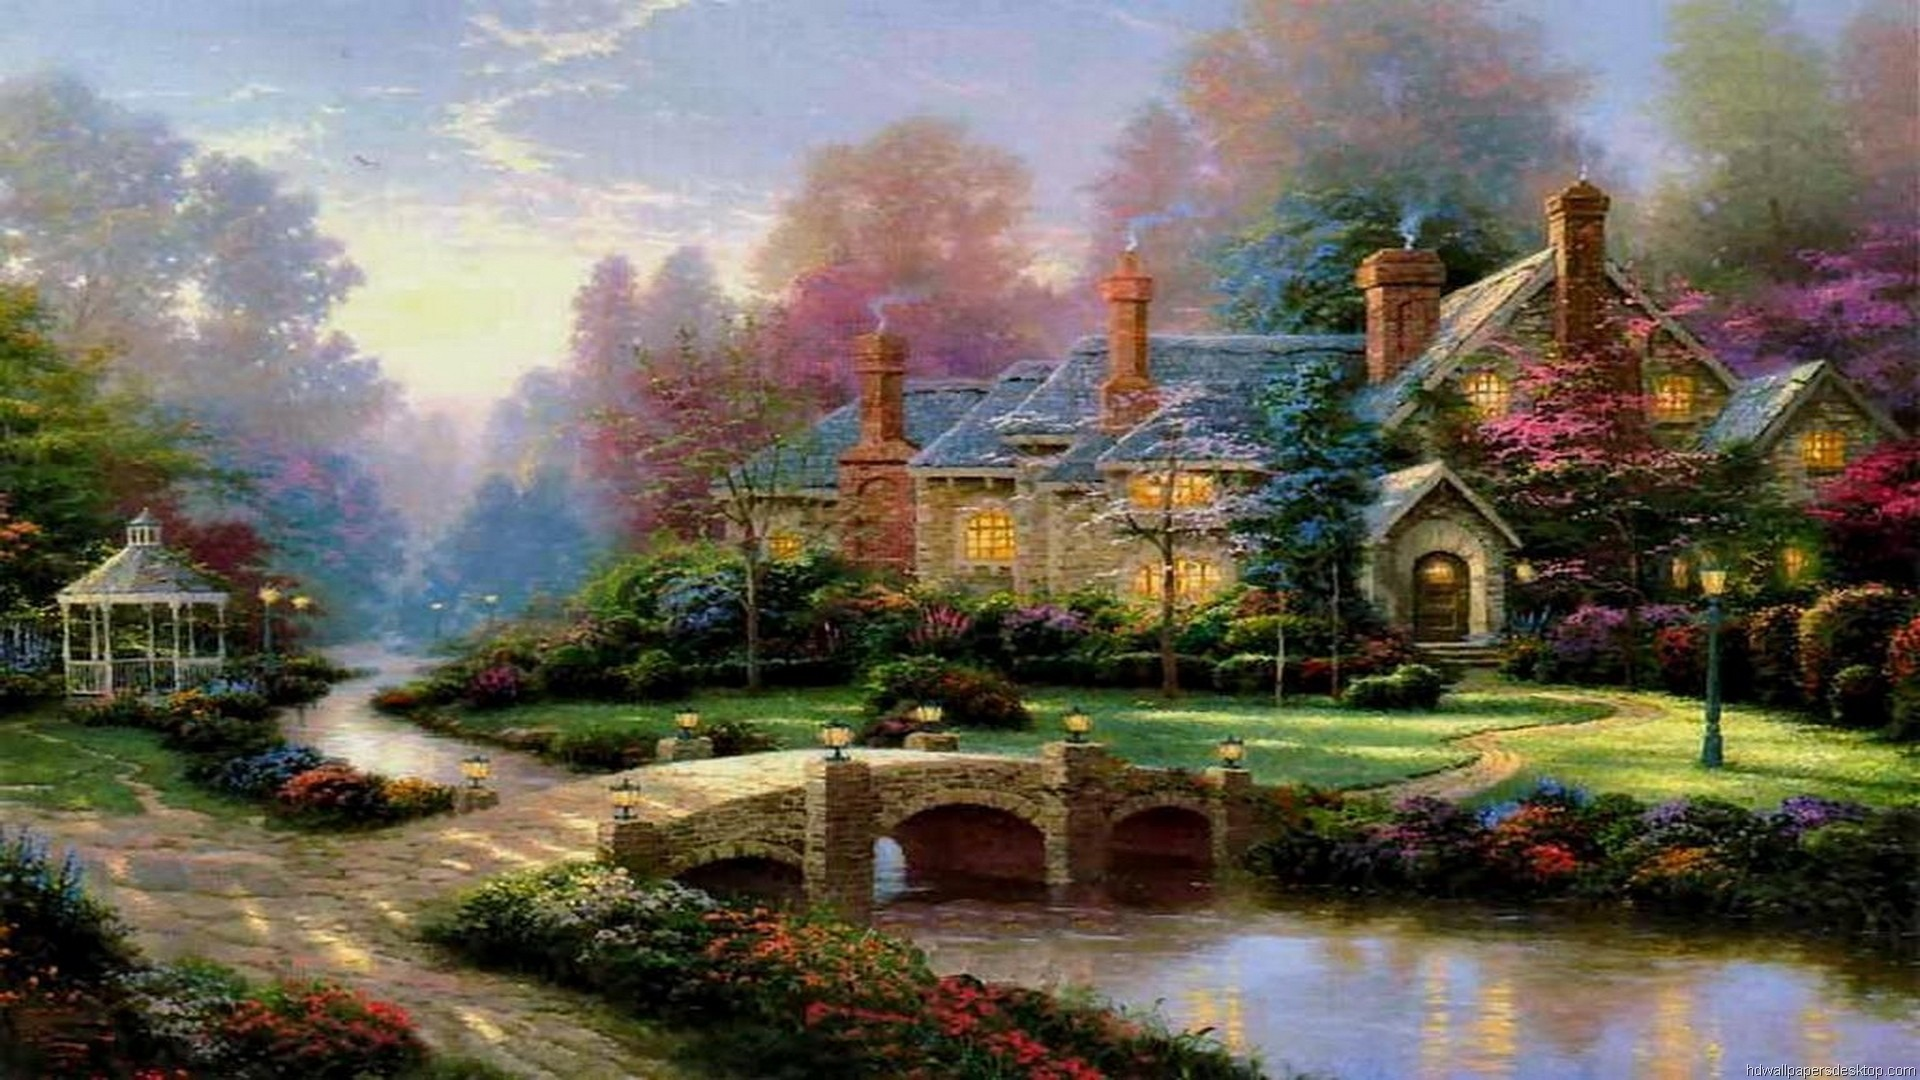 1920x1080 Thomas Kinkade Summer Paintings | Thomas Kinkade Wallpaper, Paintings, Art, HD,